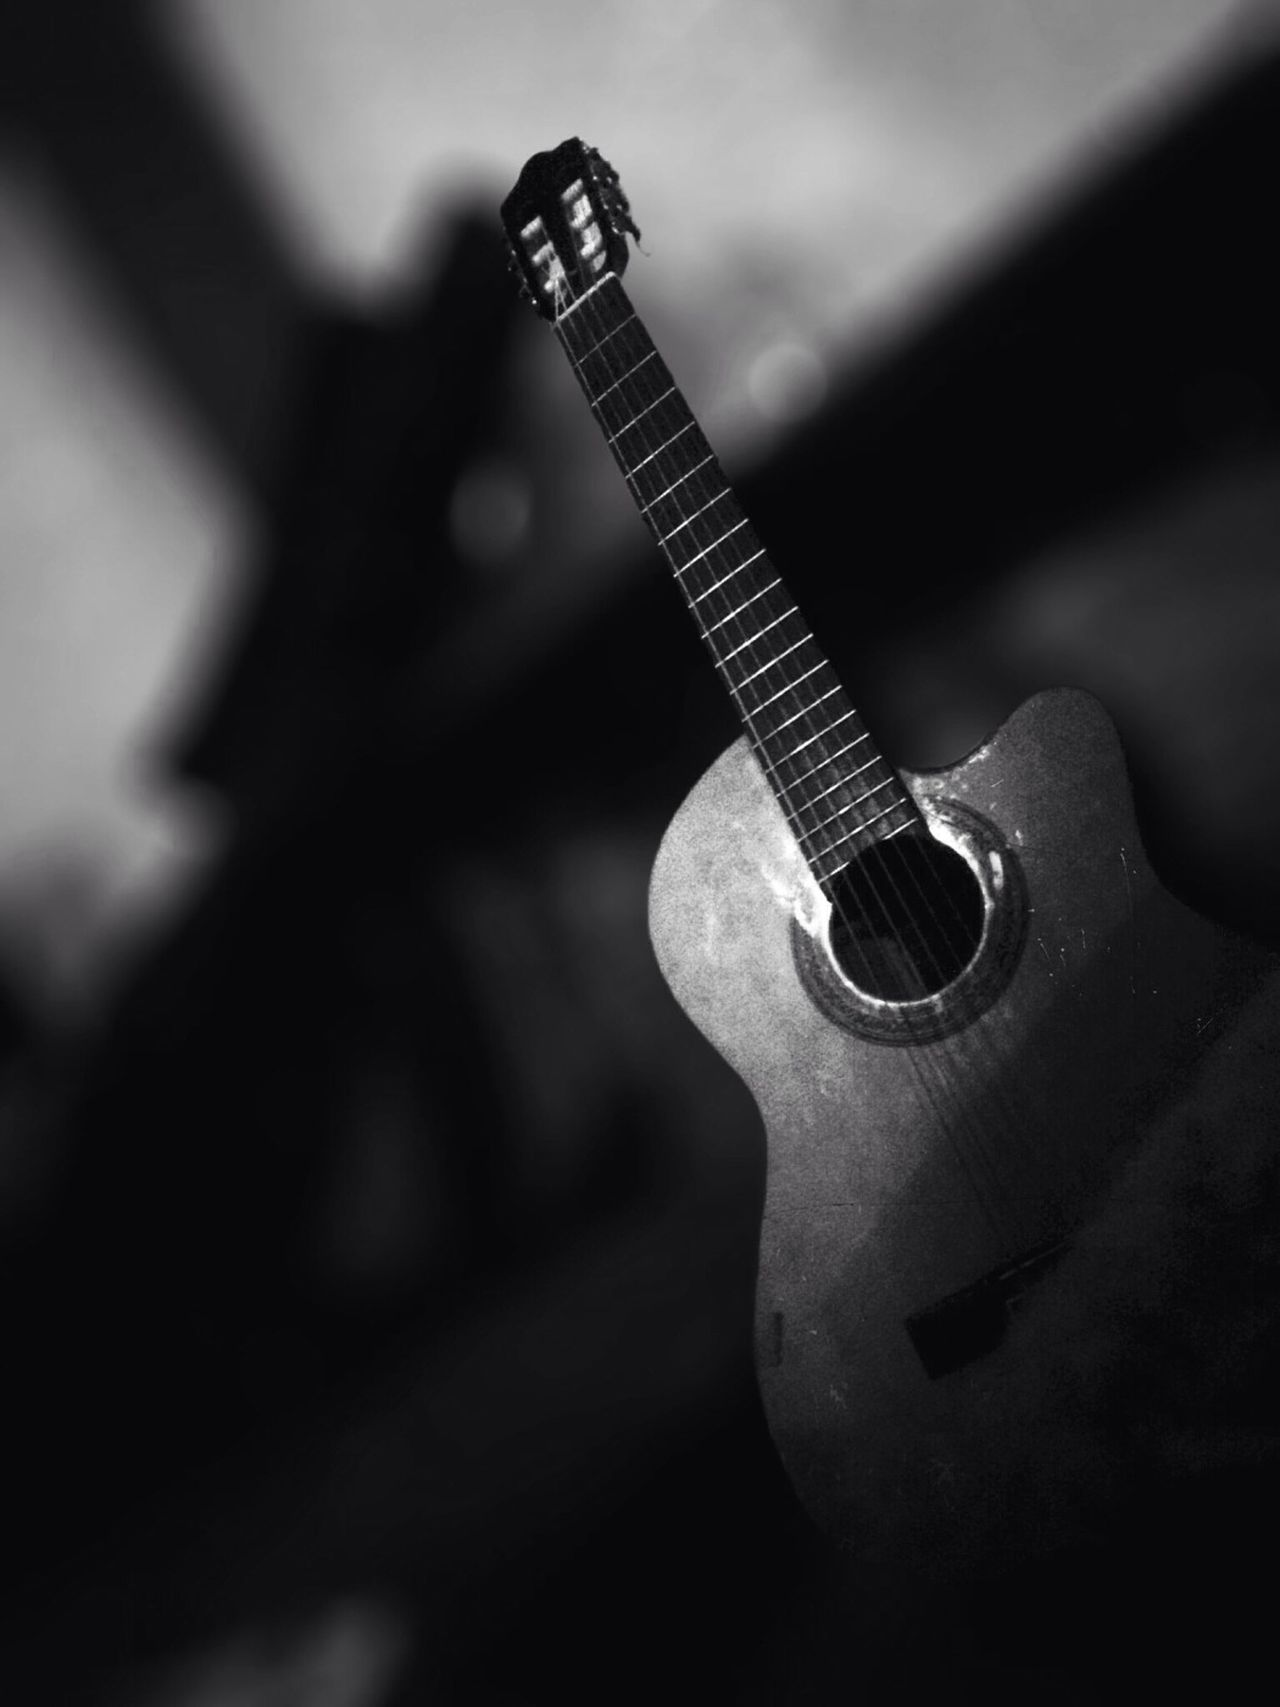 Beautiful stock photos of guitar, Acoustic Guitar, Arts Culture And Entertainment, Guitar, Home Interior